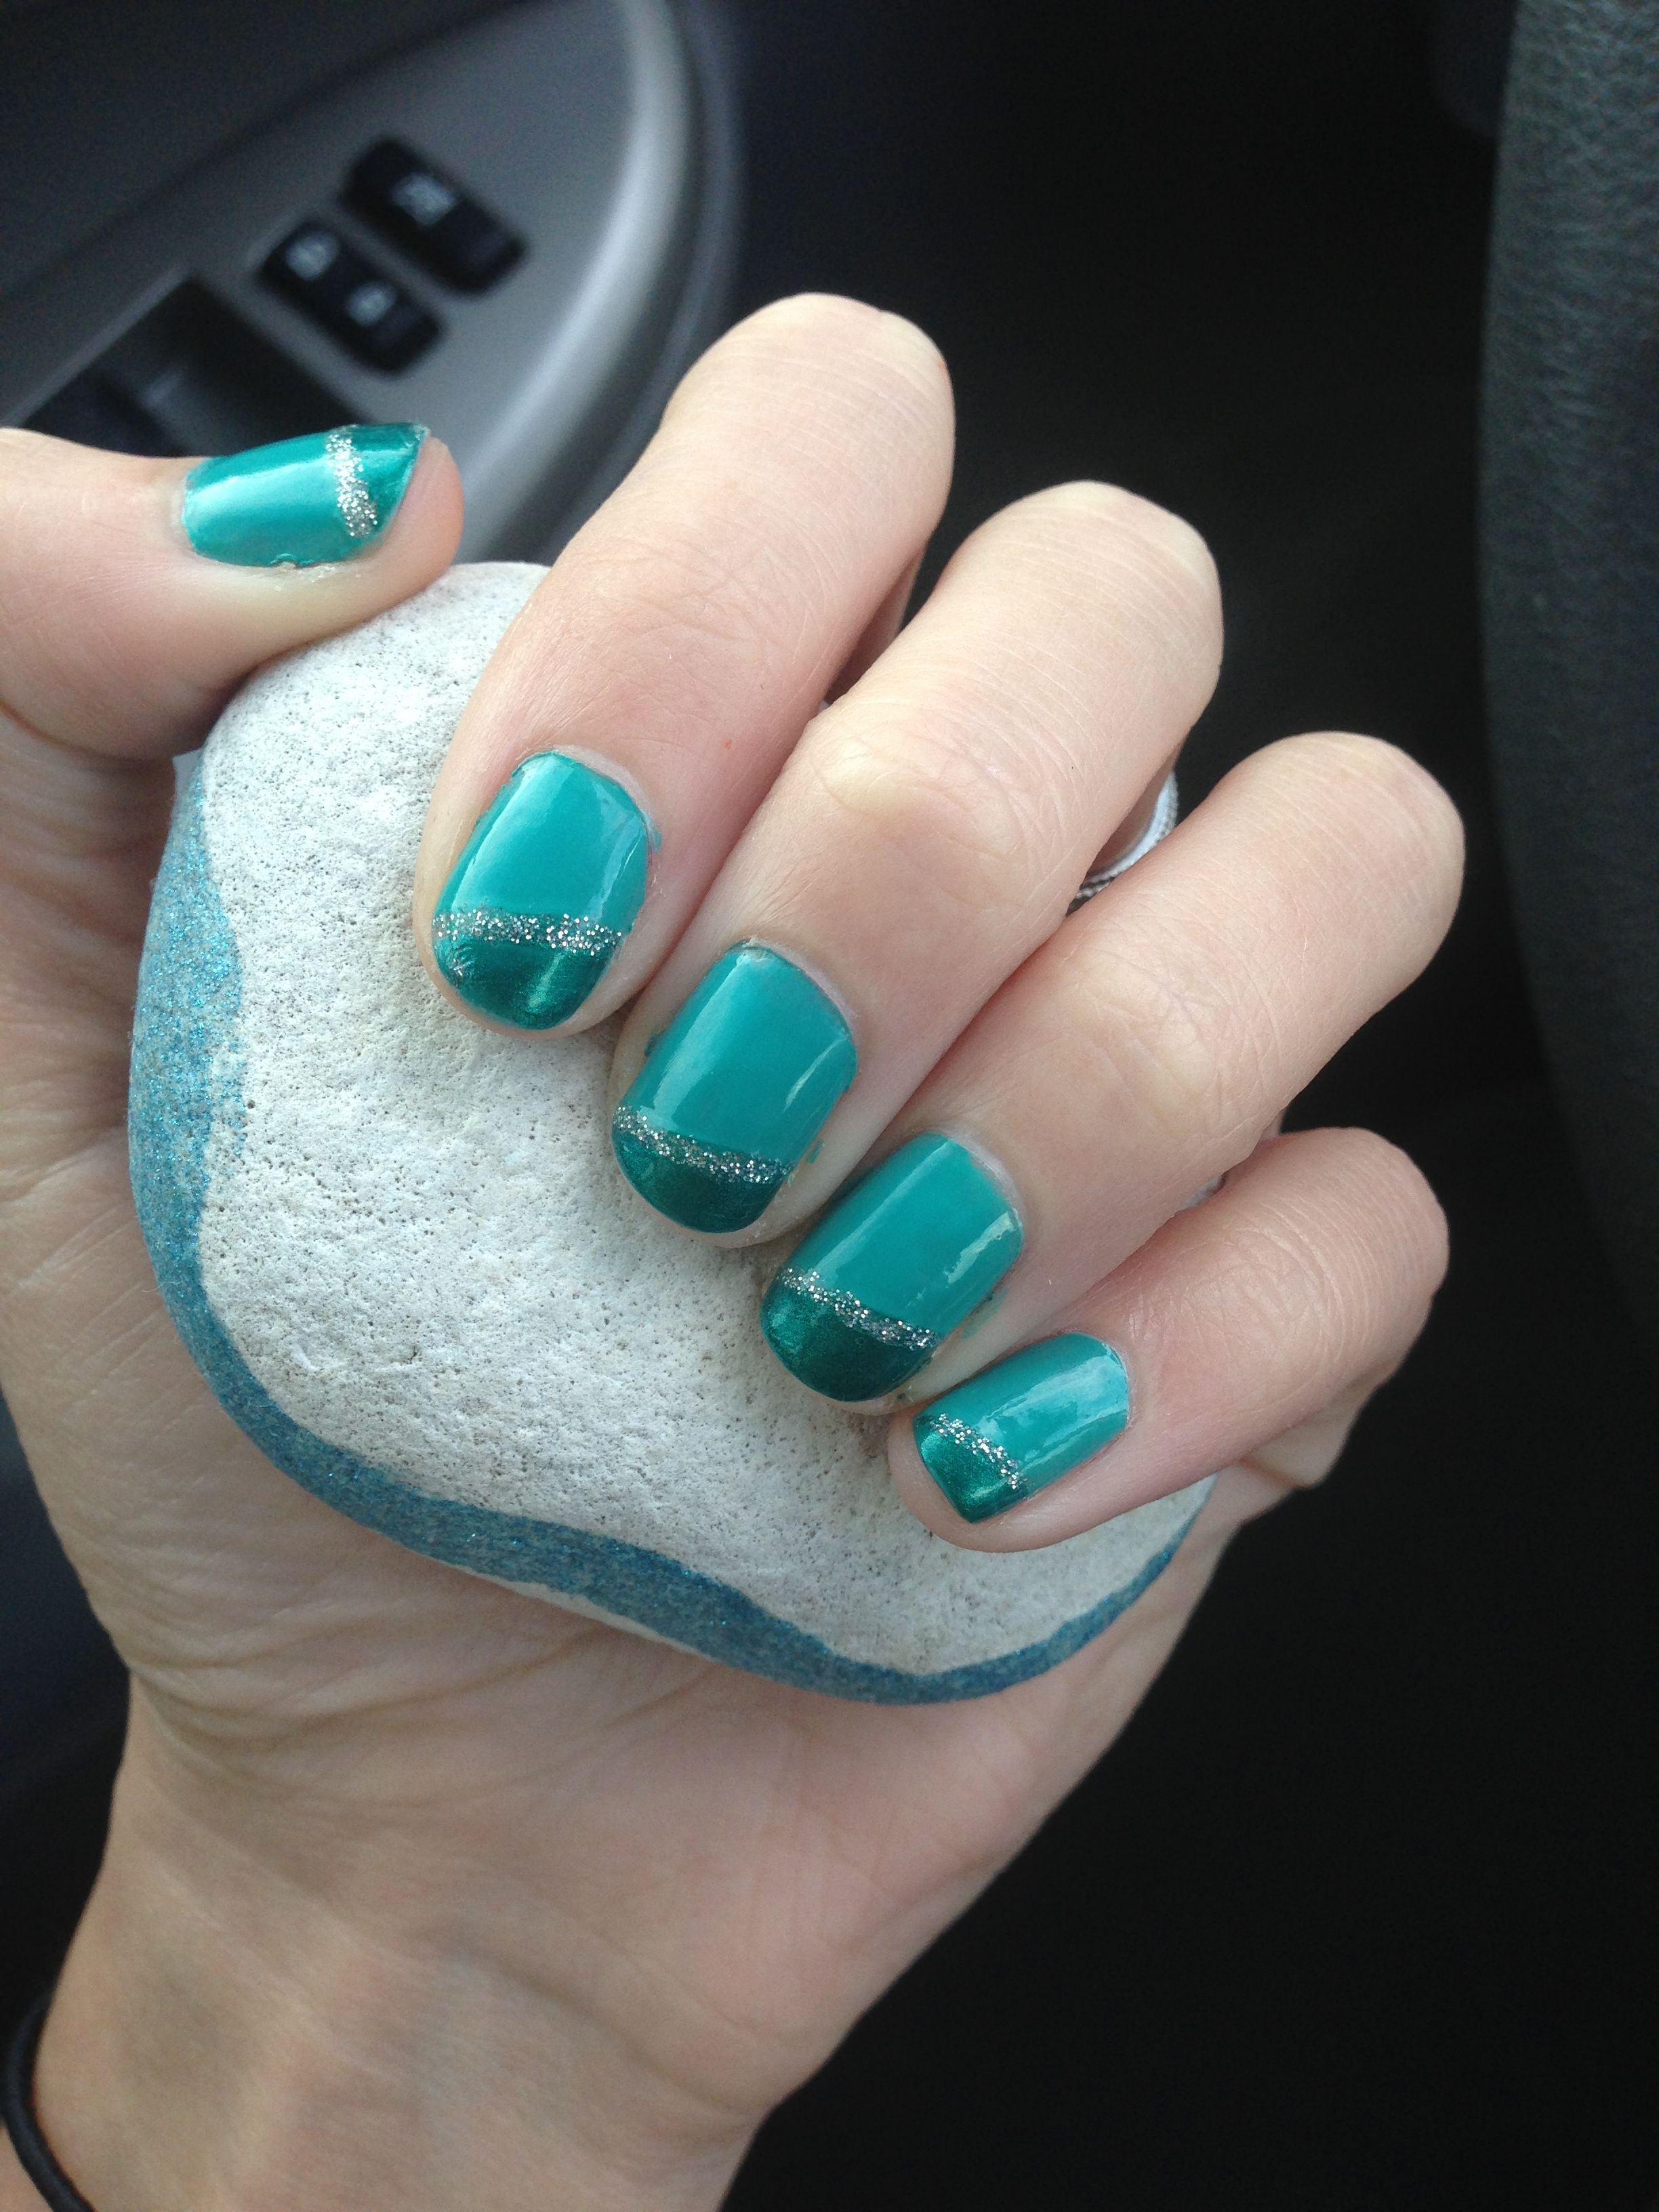 Teal And Aqua Slanted French Nail Design With Silver Sparkles